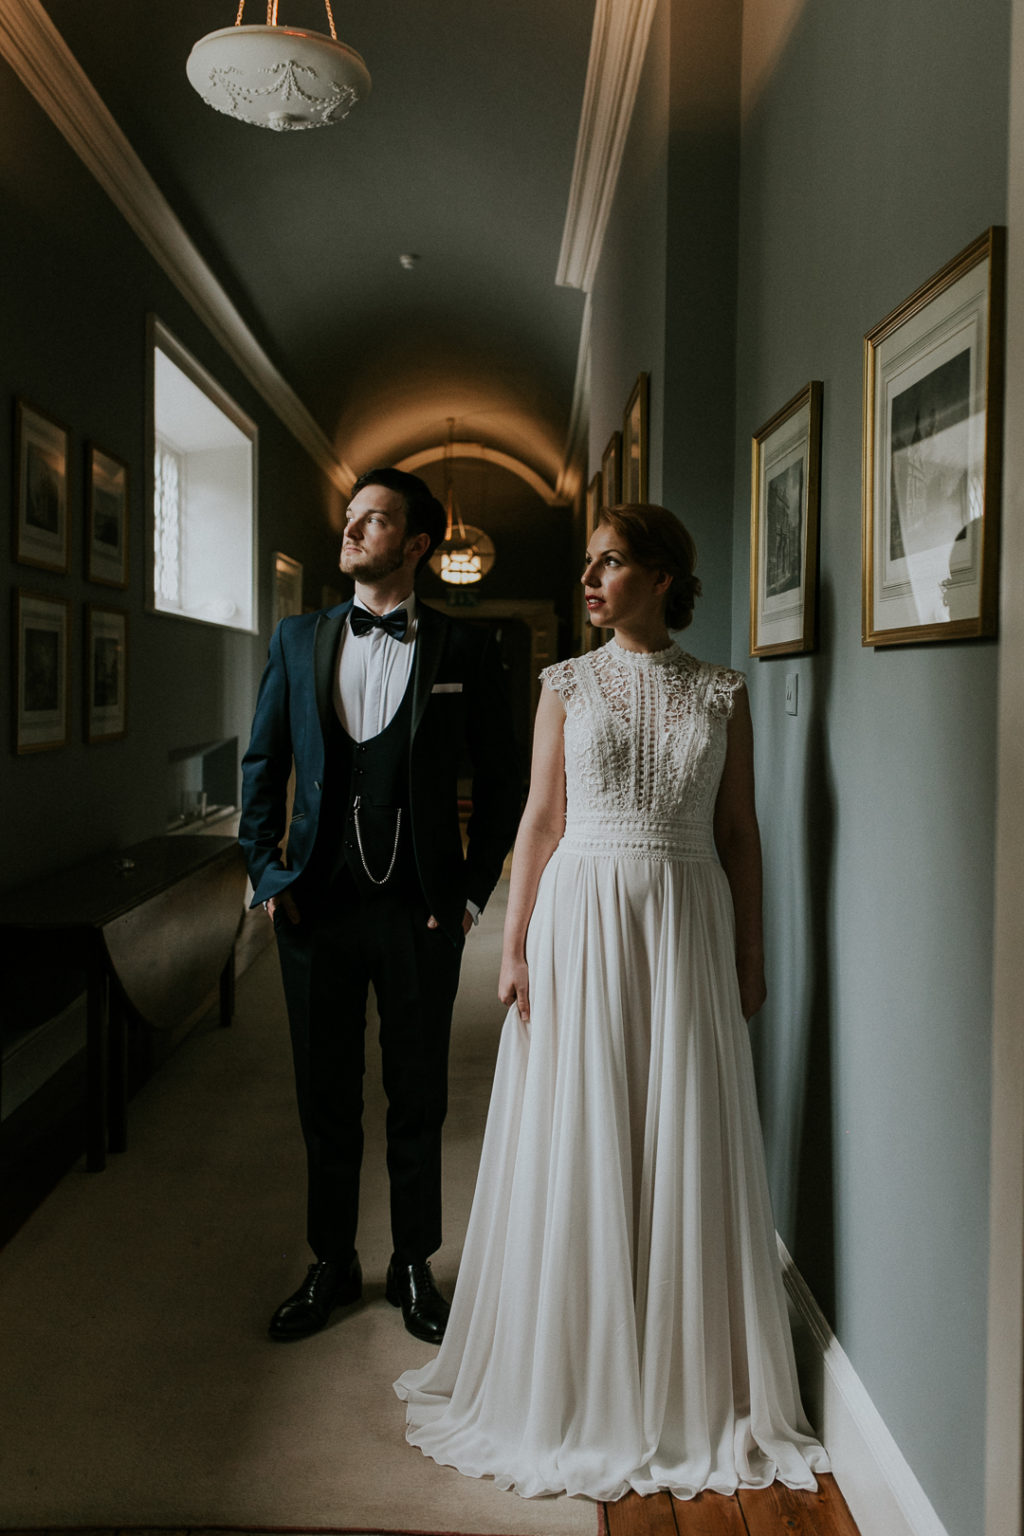 The second wedding dress was an A line one, with cap sleeves, a high neckline and a lace bodice